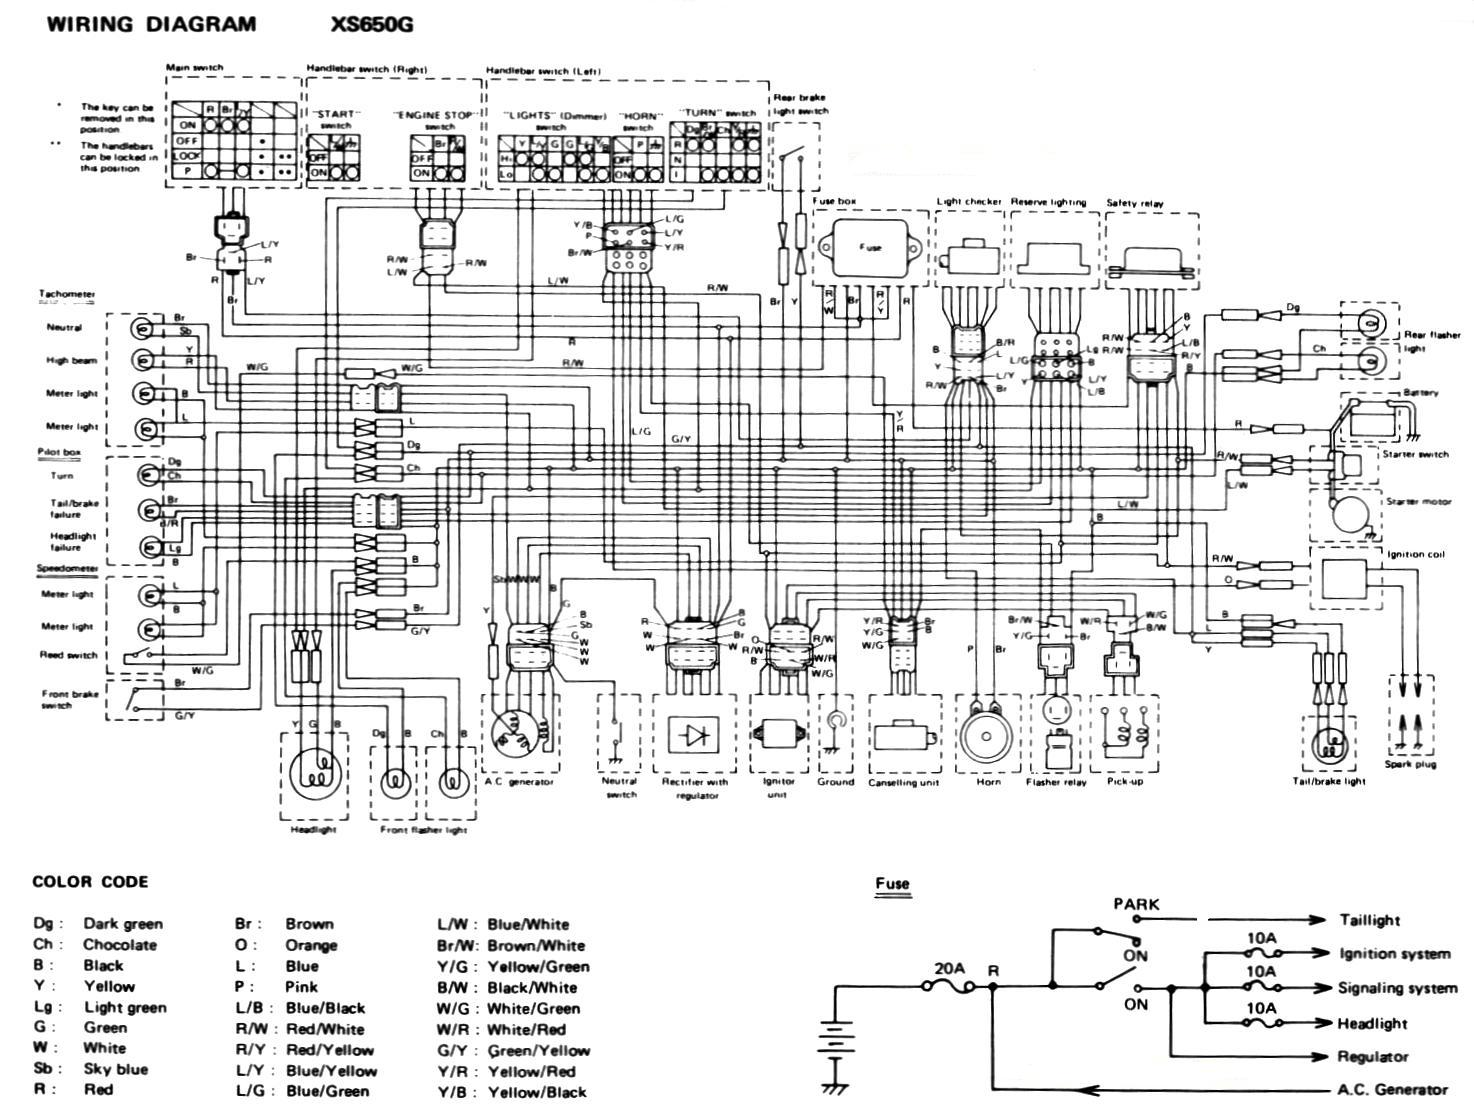 Yamaha Xs850 Wiring Diagram - wiring diagram conductor-where -  conductor-where.ortopedicoplus.it | 1980 Yamaha Xs850 Wiring Diagram |  | ortopedicoplus.it